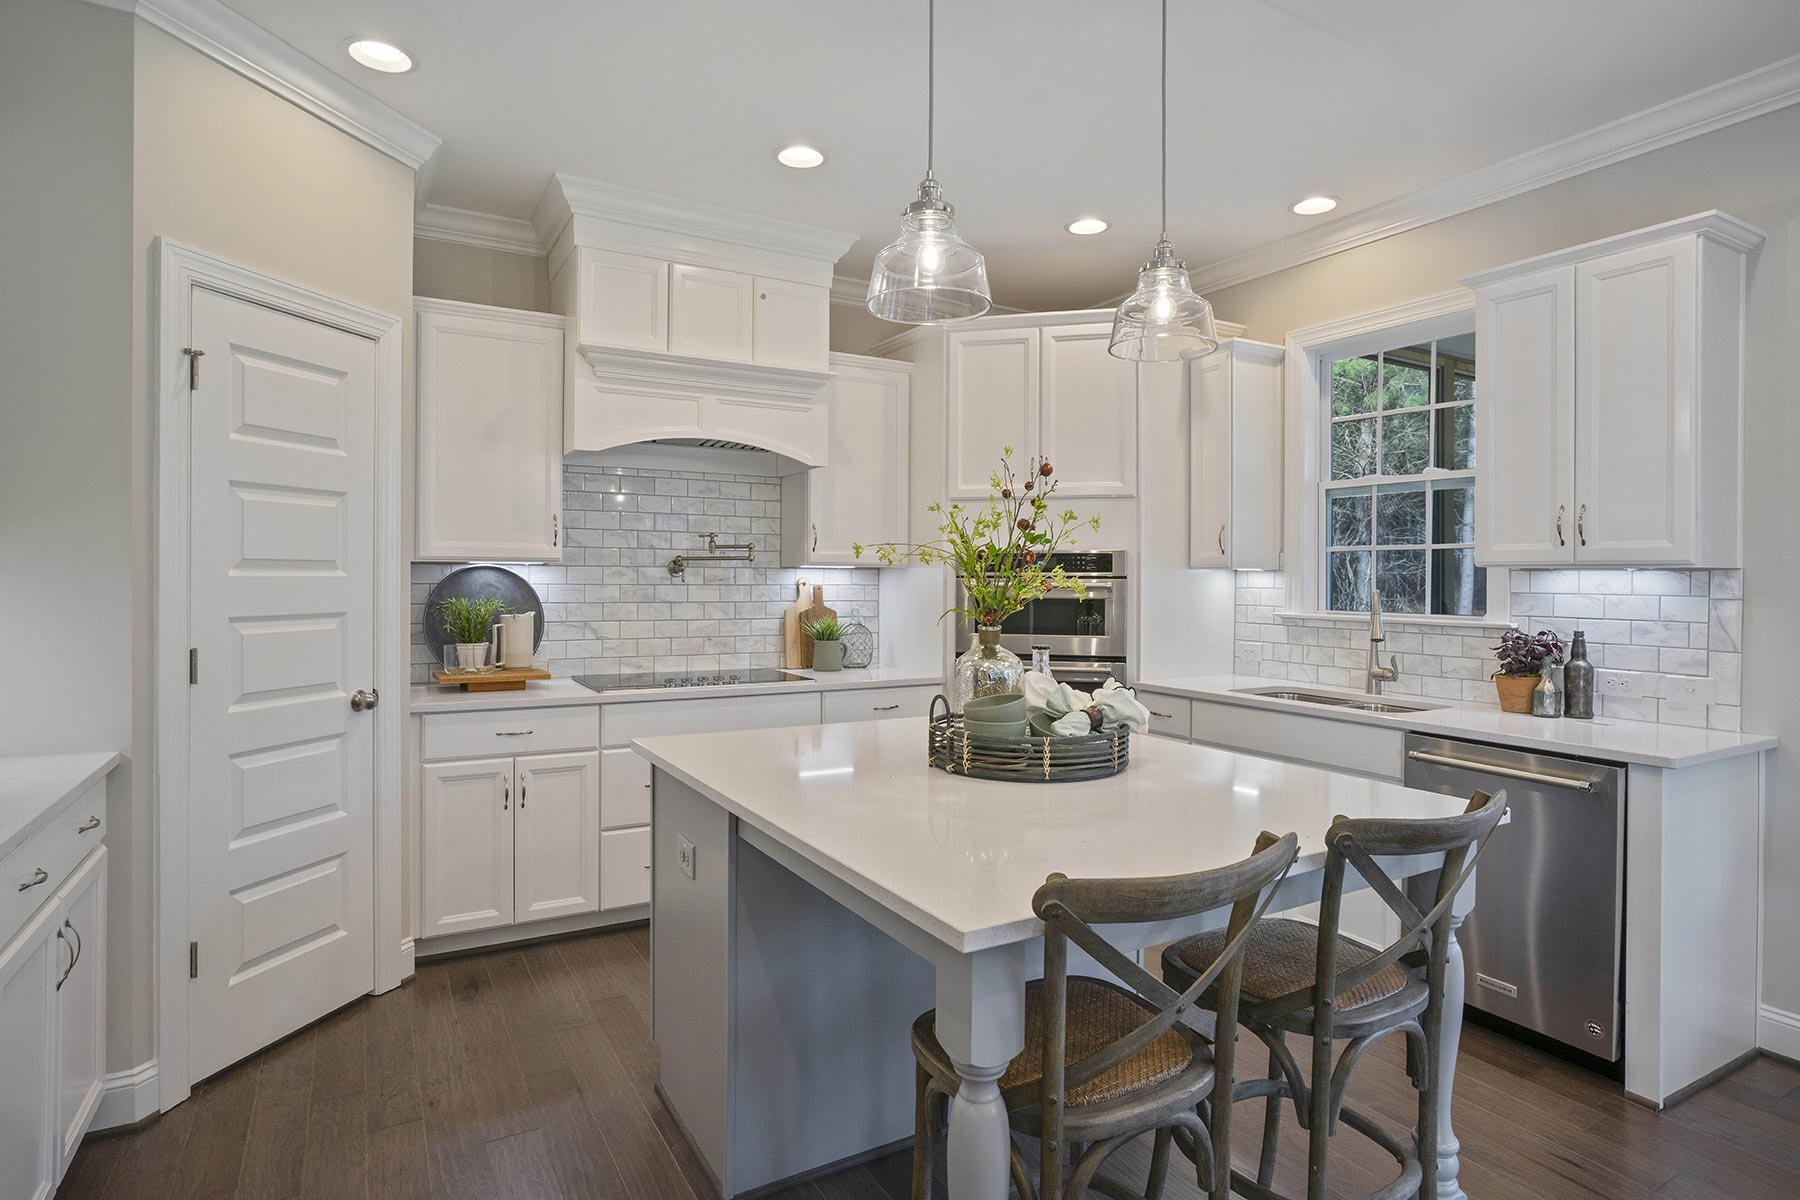 Ballentine Place Kitchen in Holly Springs North Carolina by Mattamy Homes